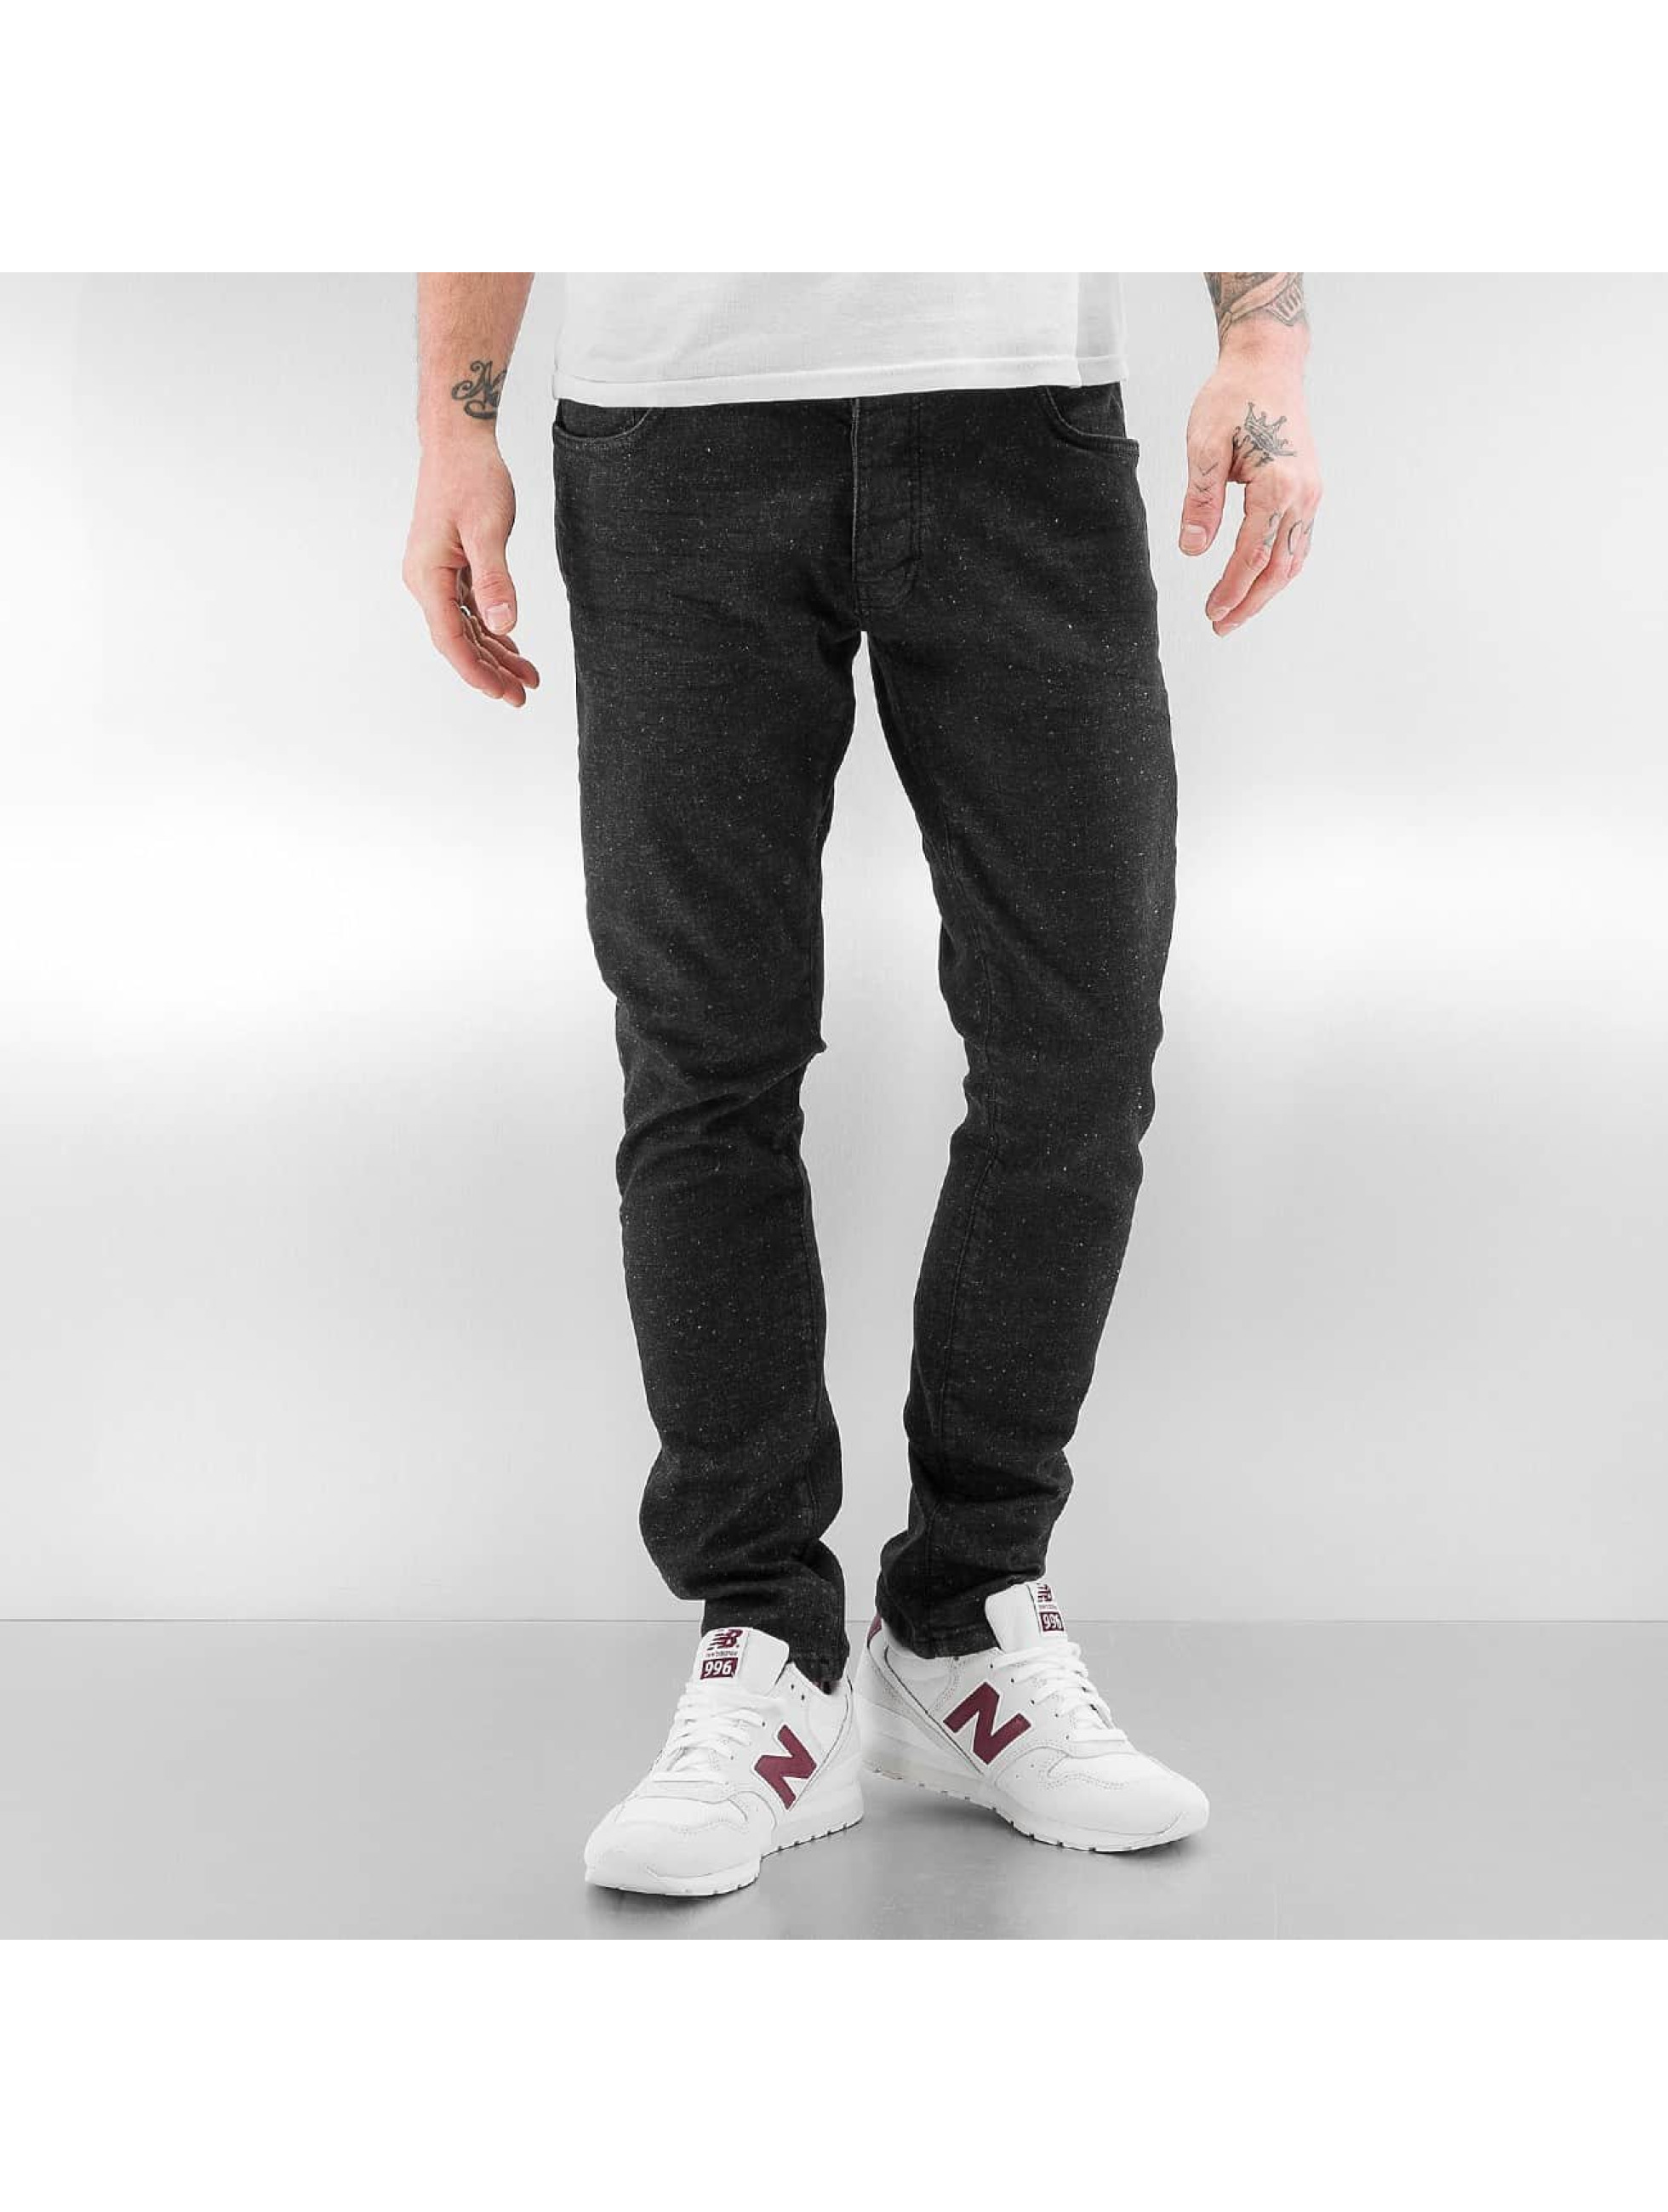 Cyprime / Slim Fit Jeans K100 in grey W 34